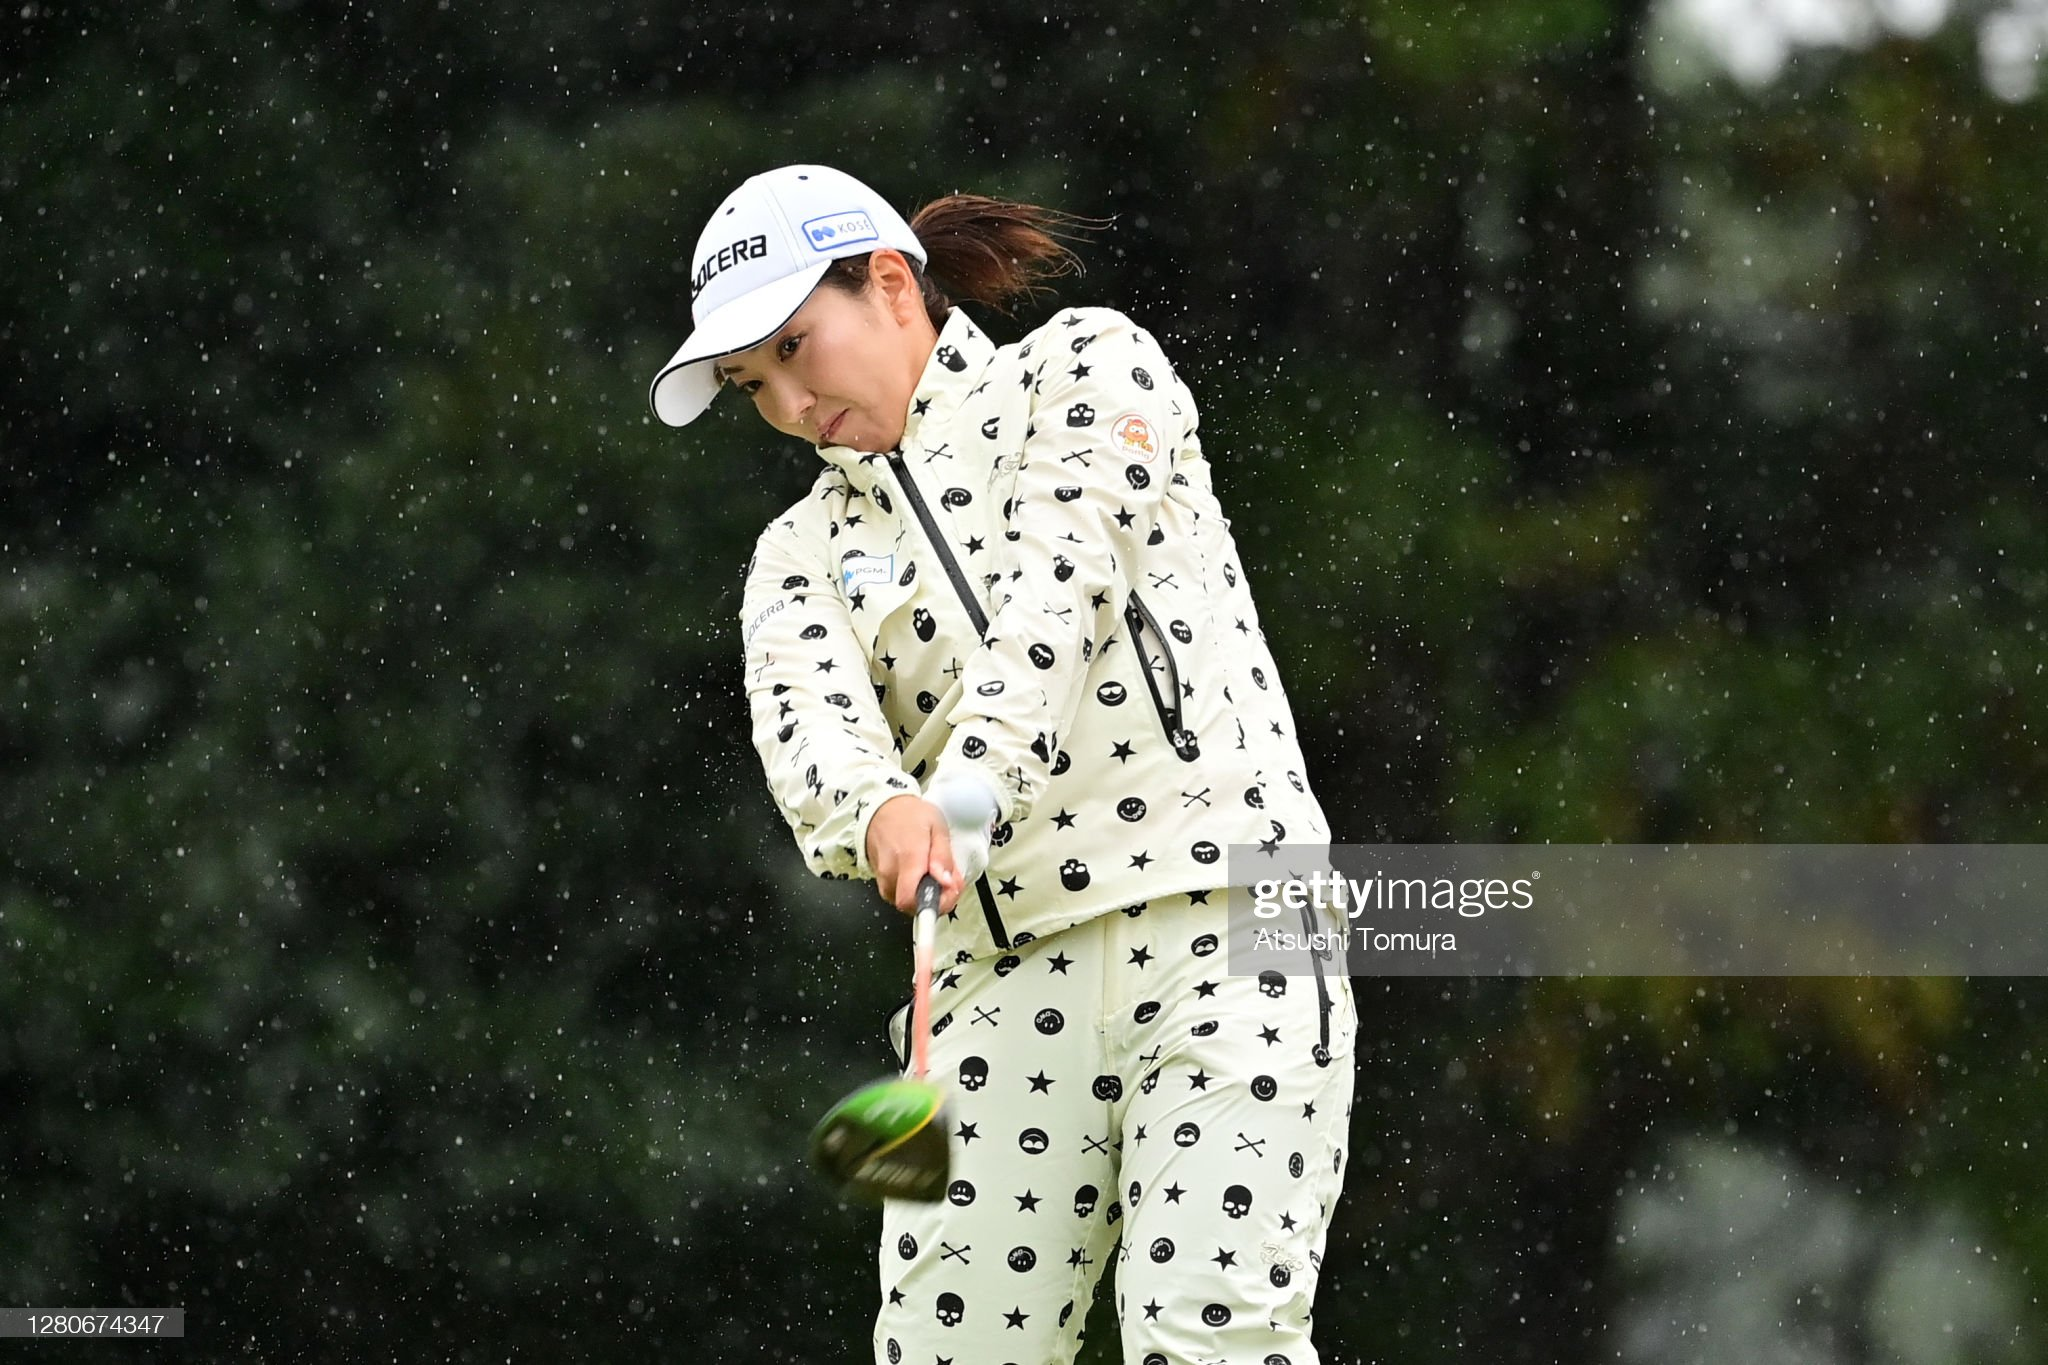 https://media.gettyimages.com/photos/ritsuko-ryu-of-japan-hits-her-tee-shot-on-the-3rd-hole-during-the-picture-id1280674347?s=2048x2048